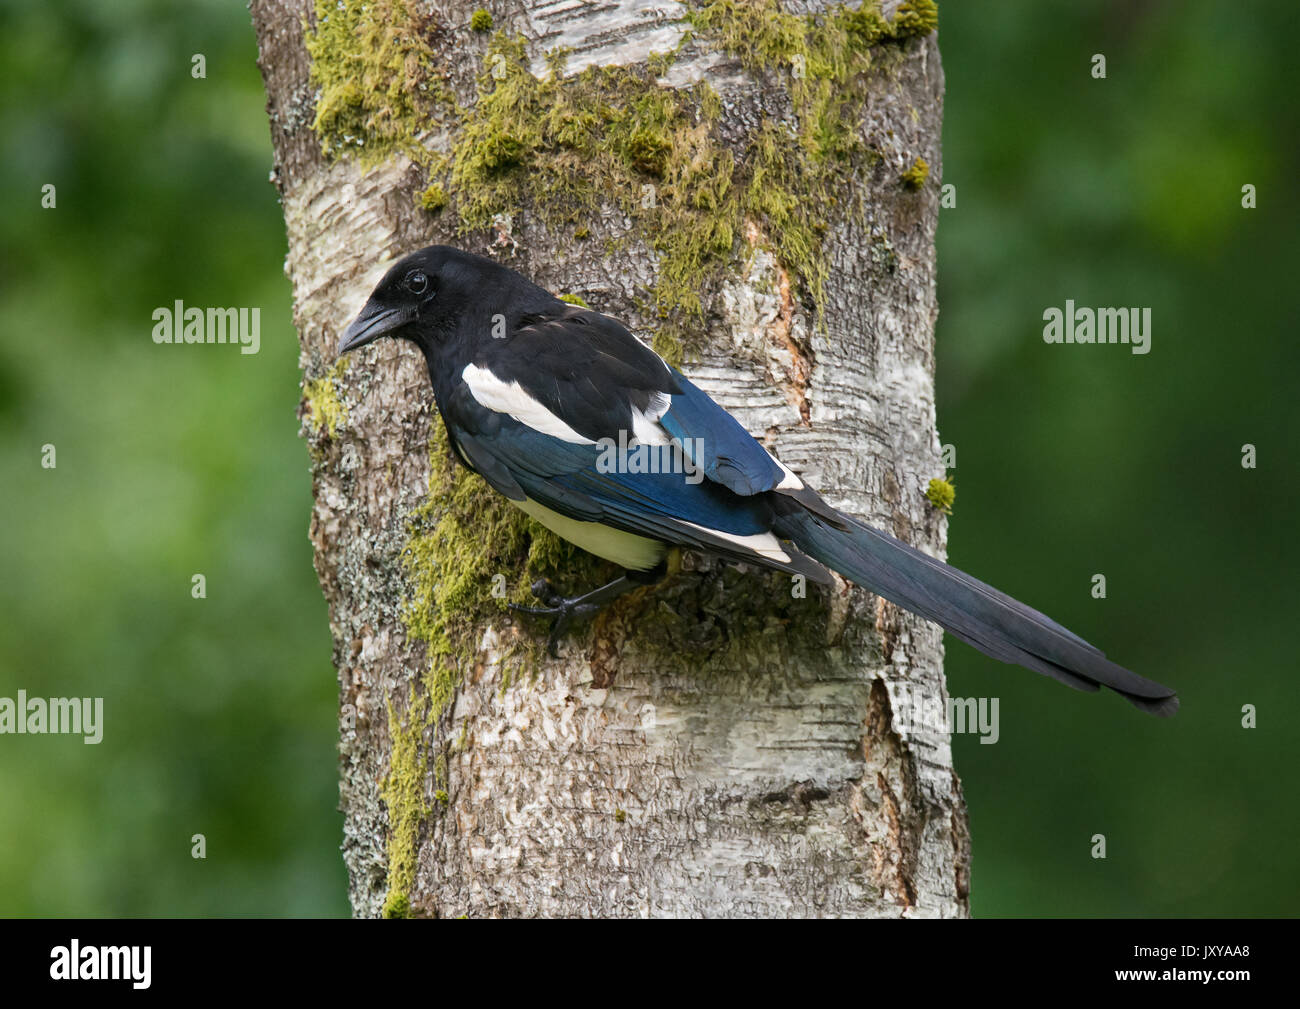 Eurasian magpie, common magpie, Pica pica, perched on silver birch tree trunk Stock Photo